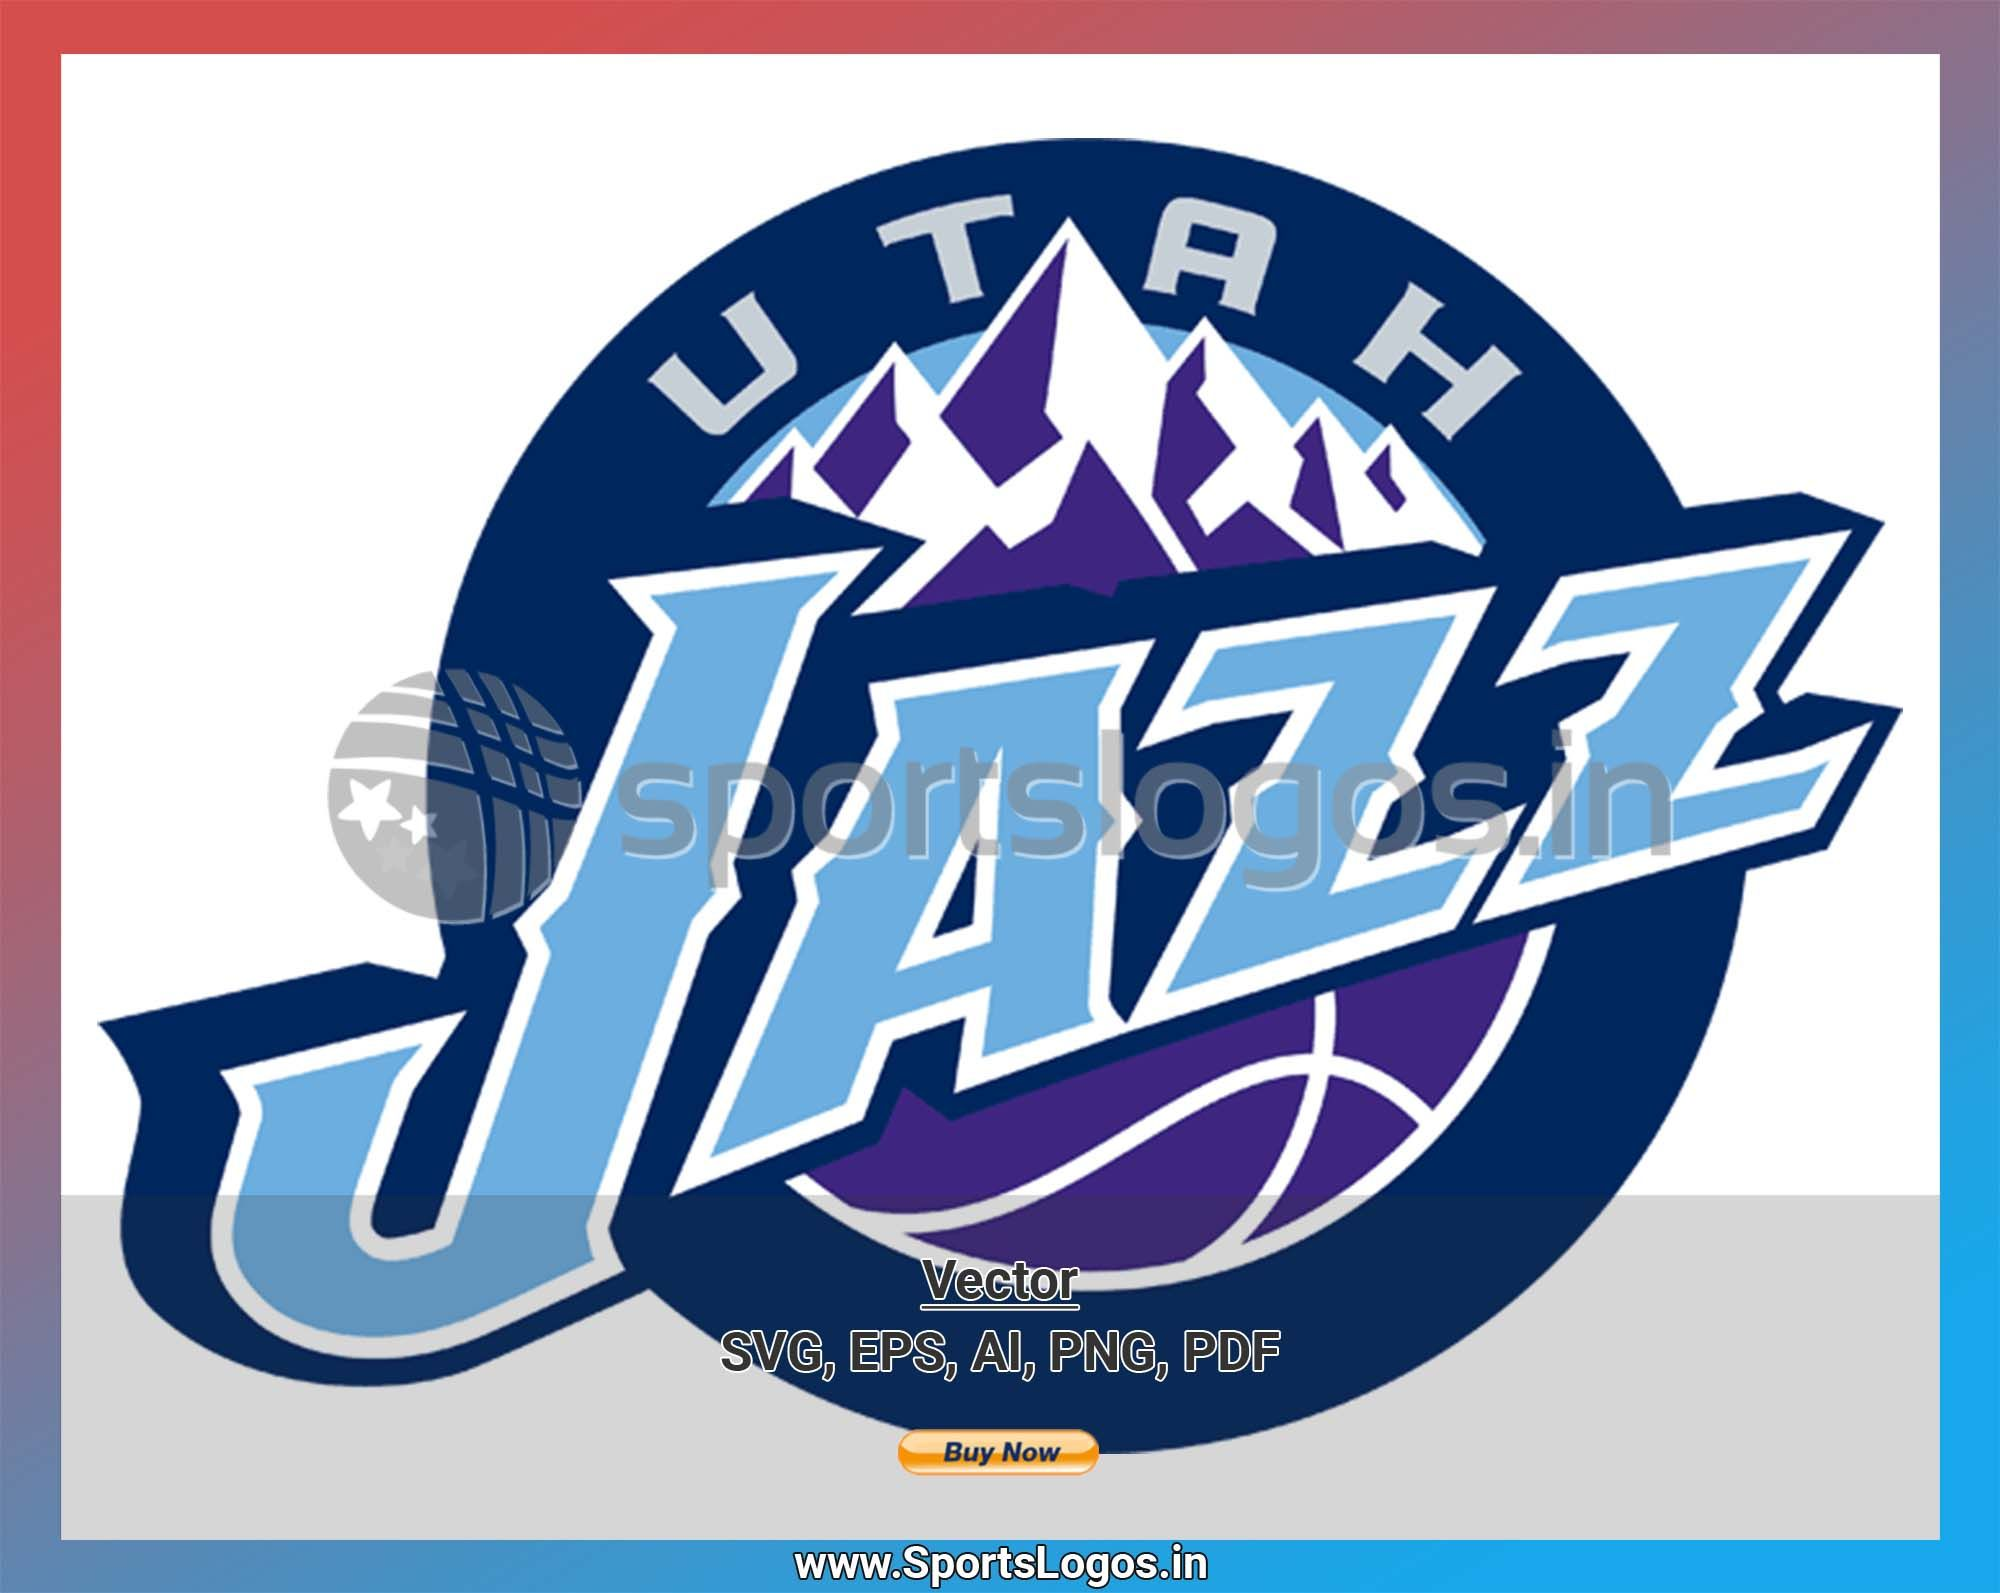 Utah Jazz Basketball Sports Vector Svg Logo In 5 Formats Spln004631 Sports Logos Embroidery Vector For Nfl Nba Nhl Mlb Milb And More Jazz Basketball Utah Jazz Utah Jazz Basketball